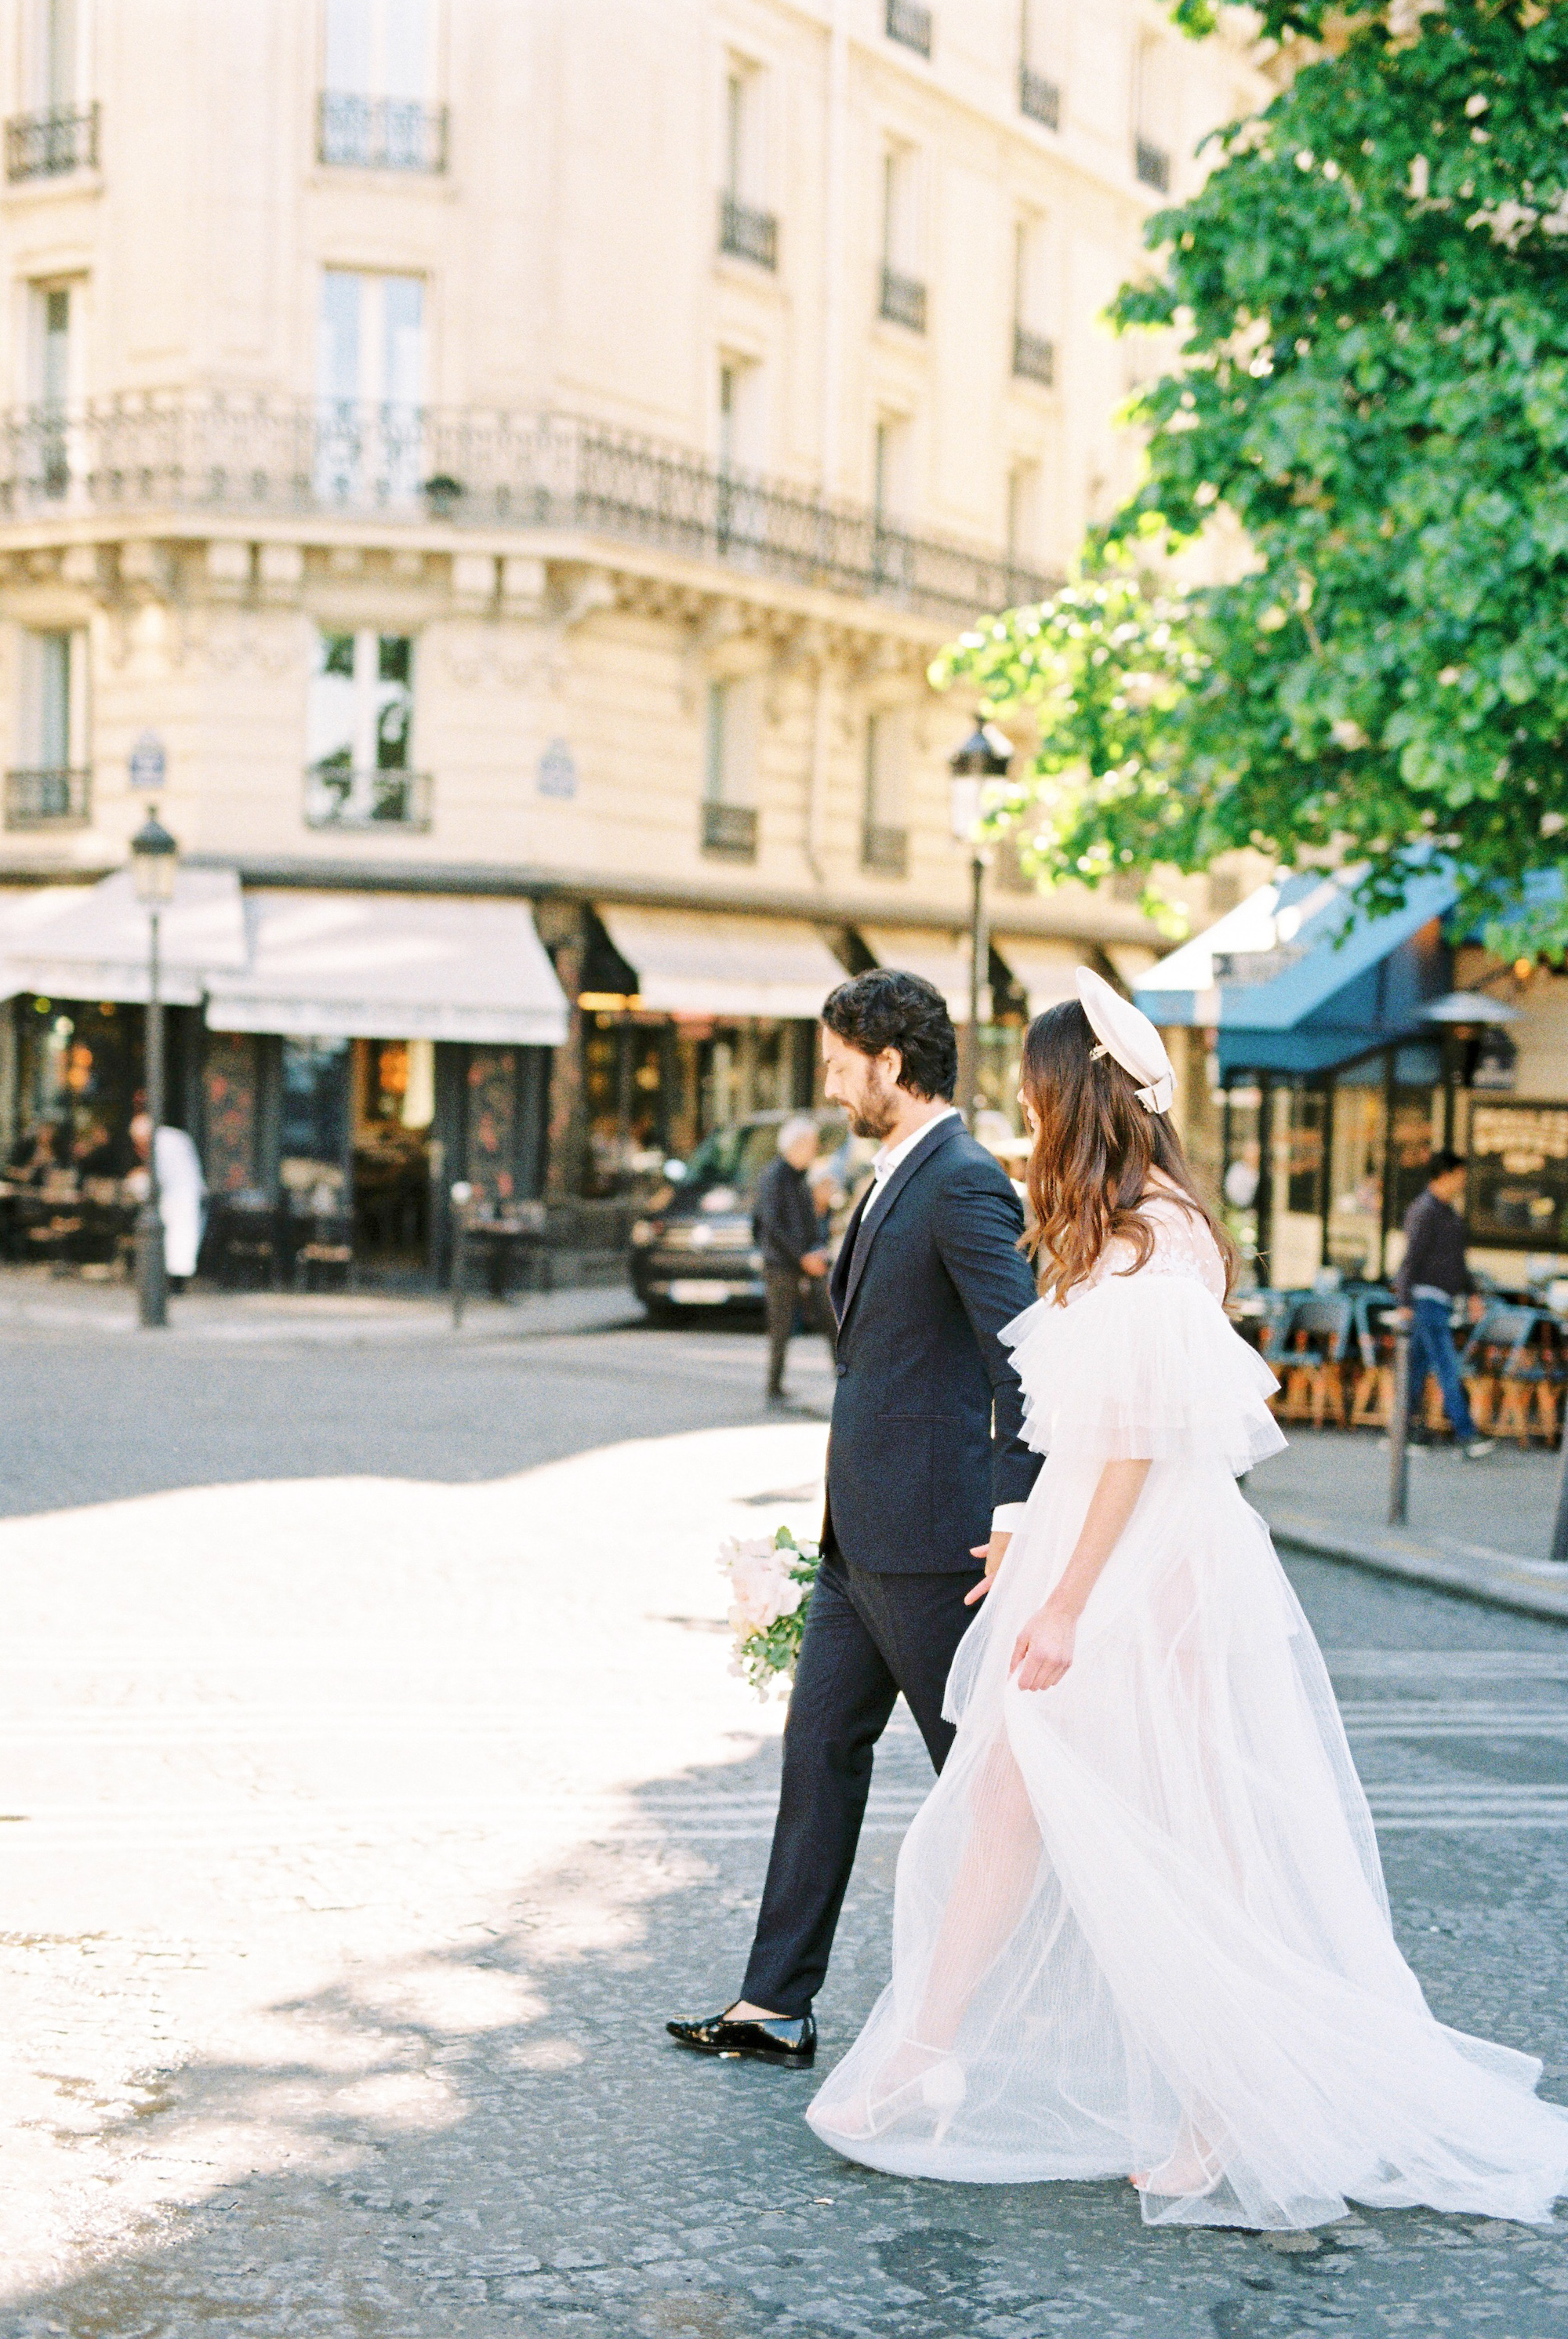 walk the streets of paris